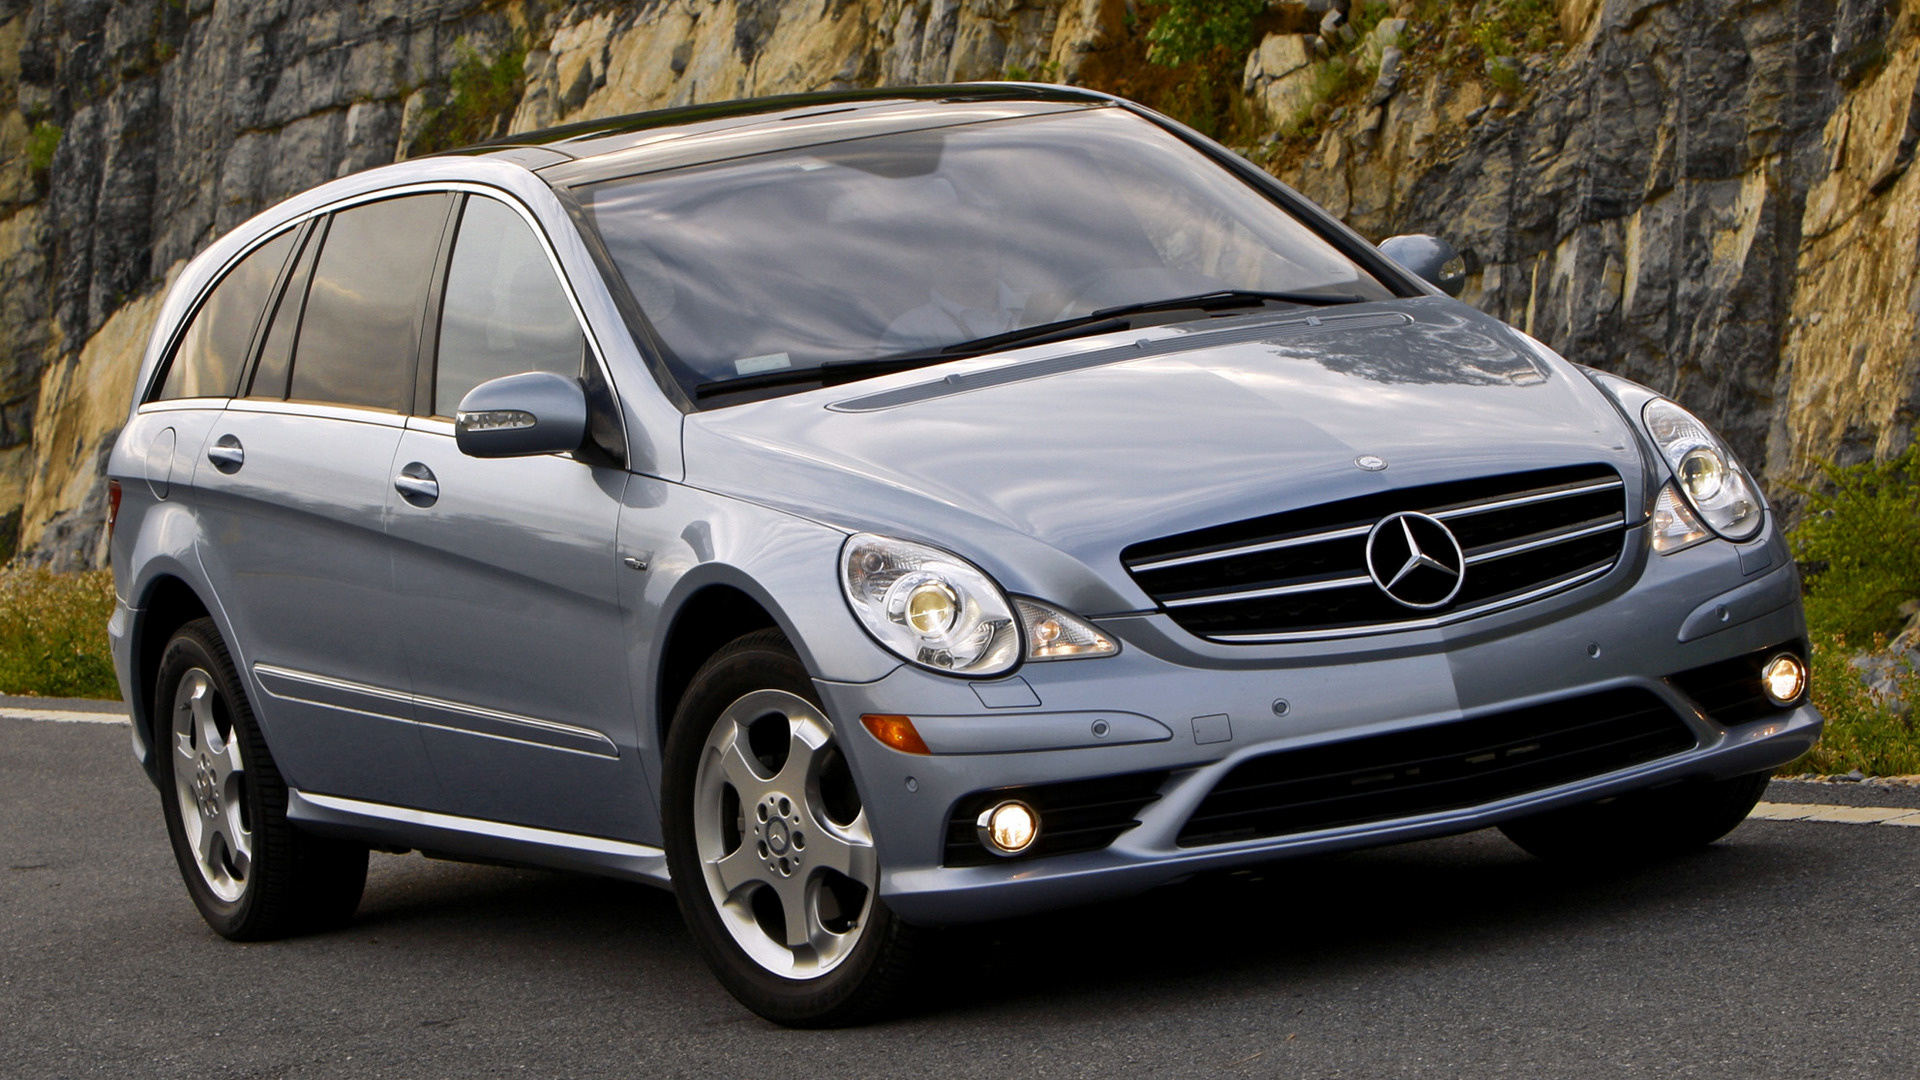 mercedes benz r class amg styling long 2006 us wallpapers and hd images car pixel. Black Bedroom Furniture Sets. Home Design Ideas